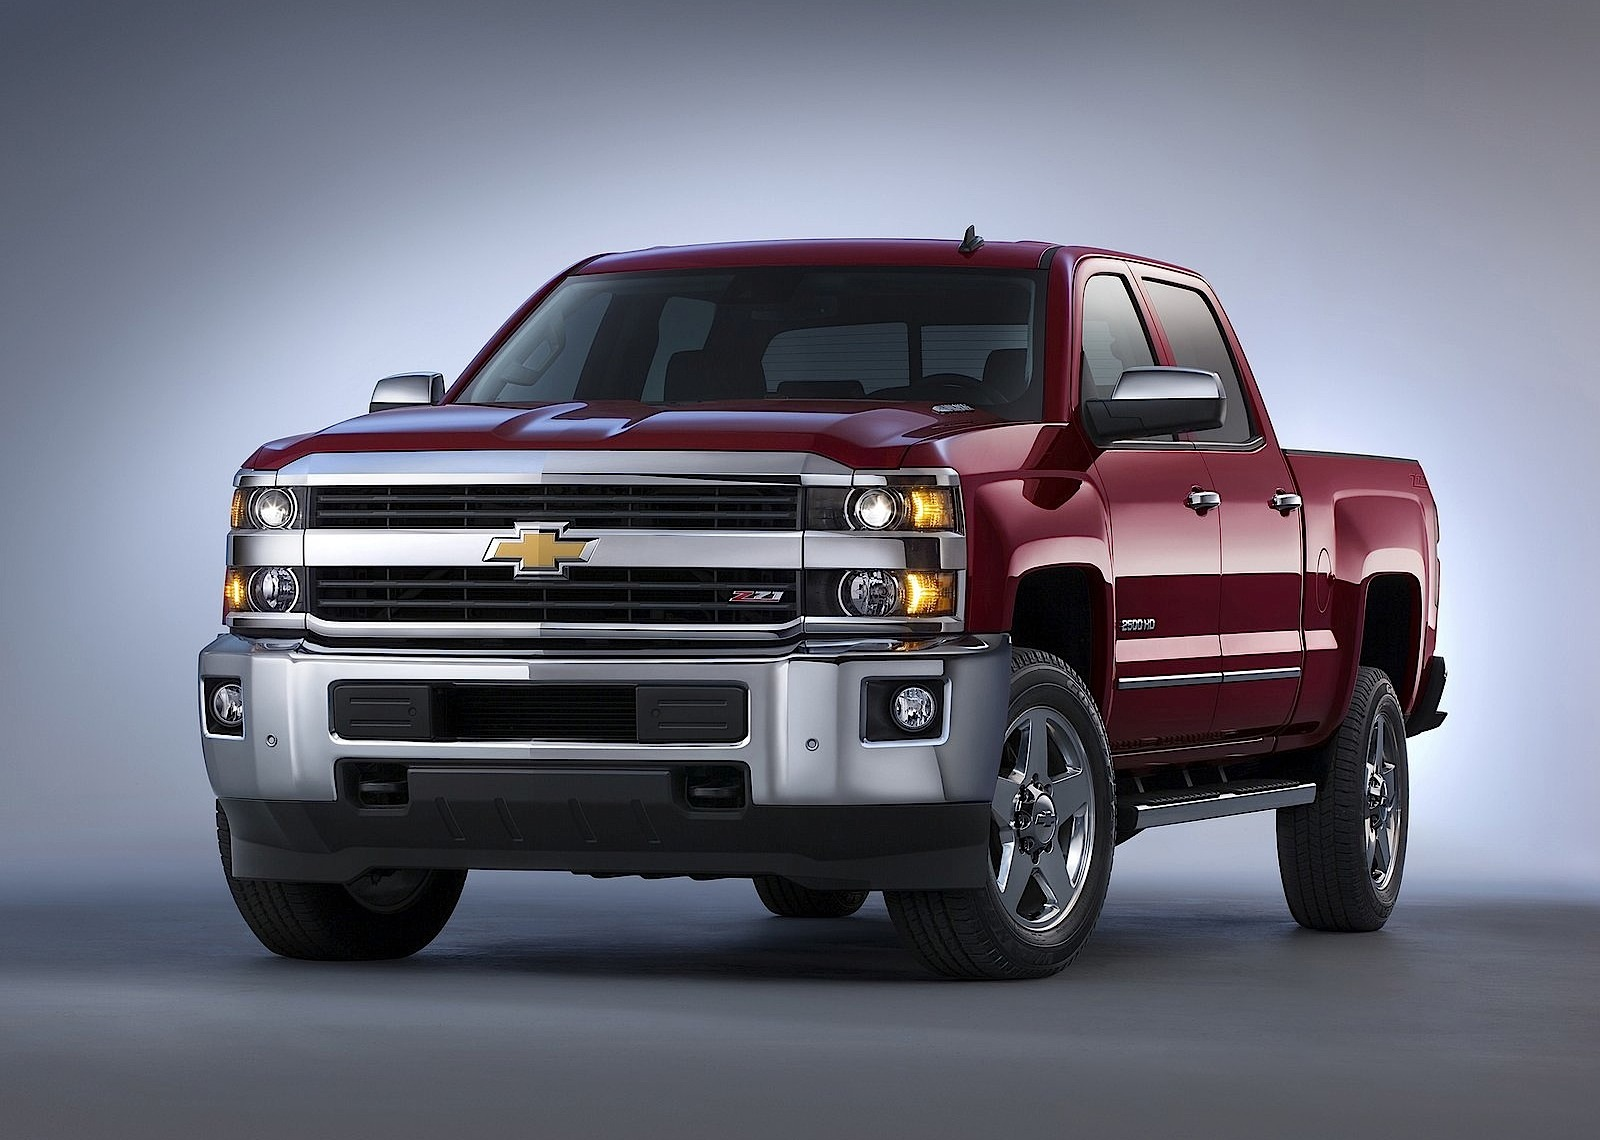 chevrolet silverado 2500 hd crew cab 2013 2014 2015 2016 2017 autoevolution. Black Bedroom Furniture Sets. Home Design Ideas